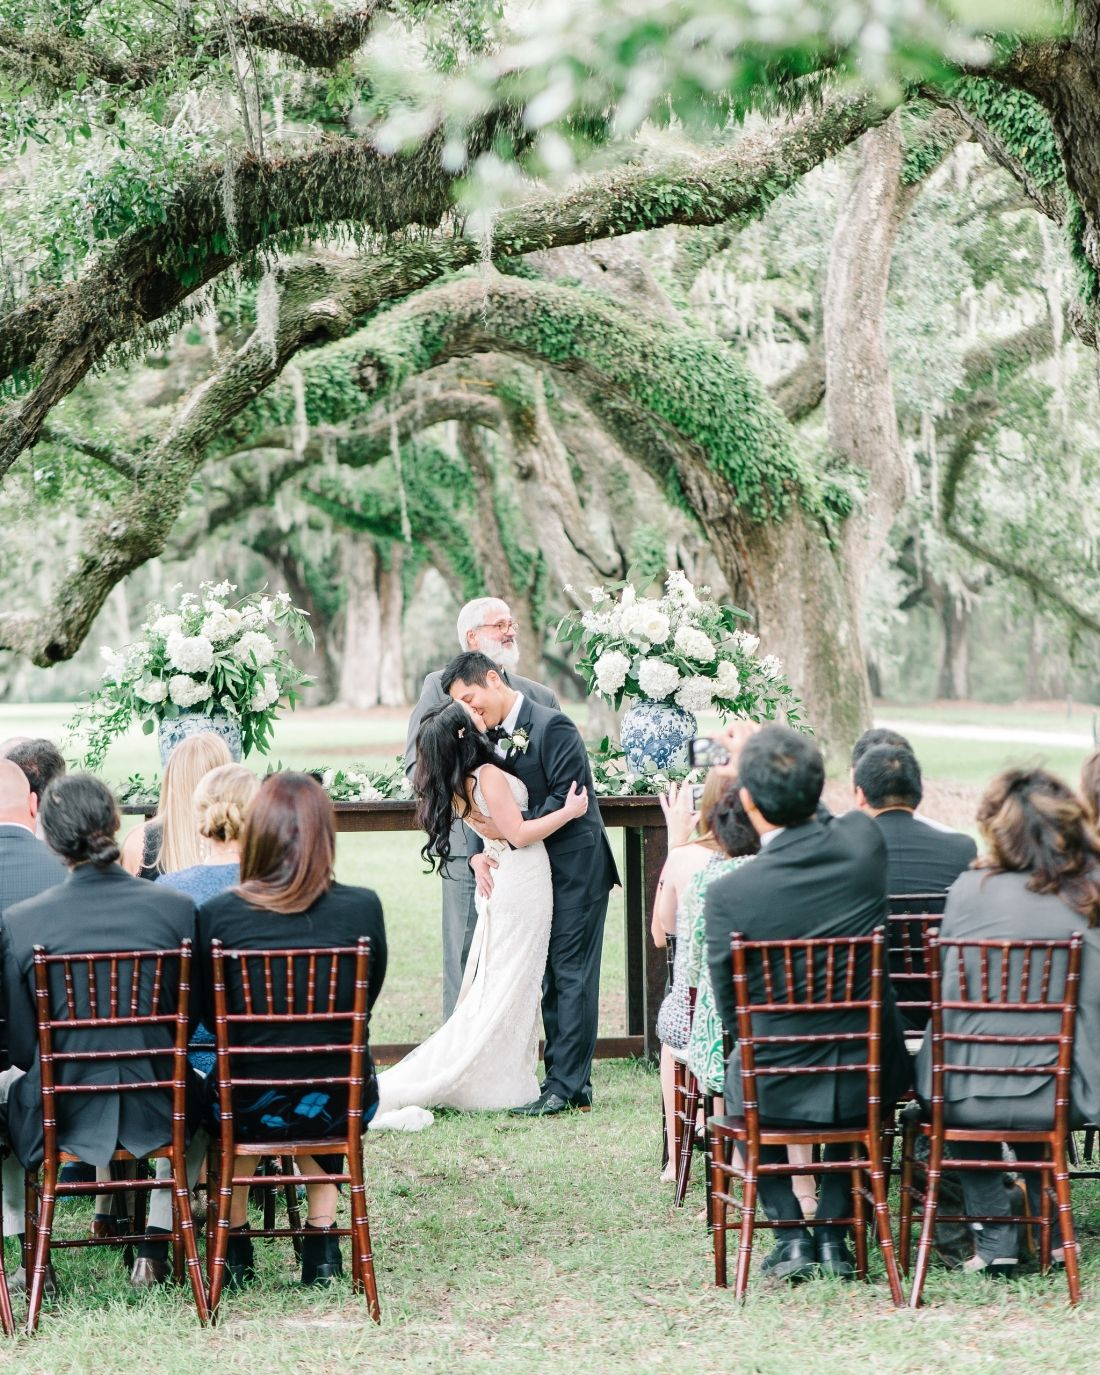 Boone Hall Plantation Wedding Ceremony Under The Giant Live Oak Trees In Charleston Sc